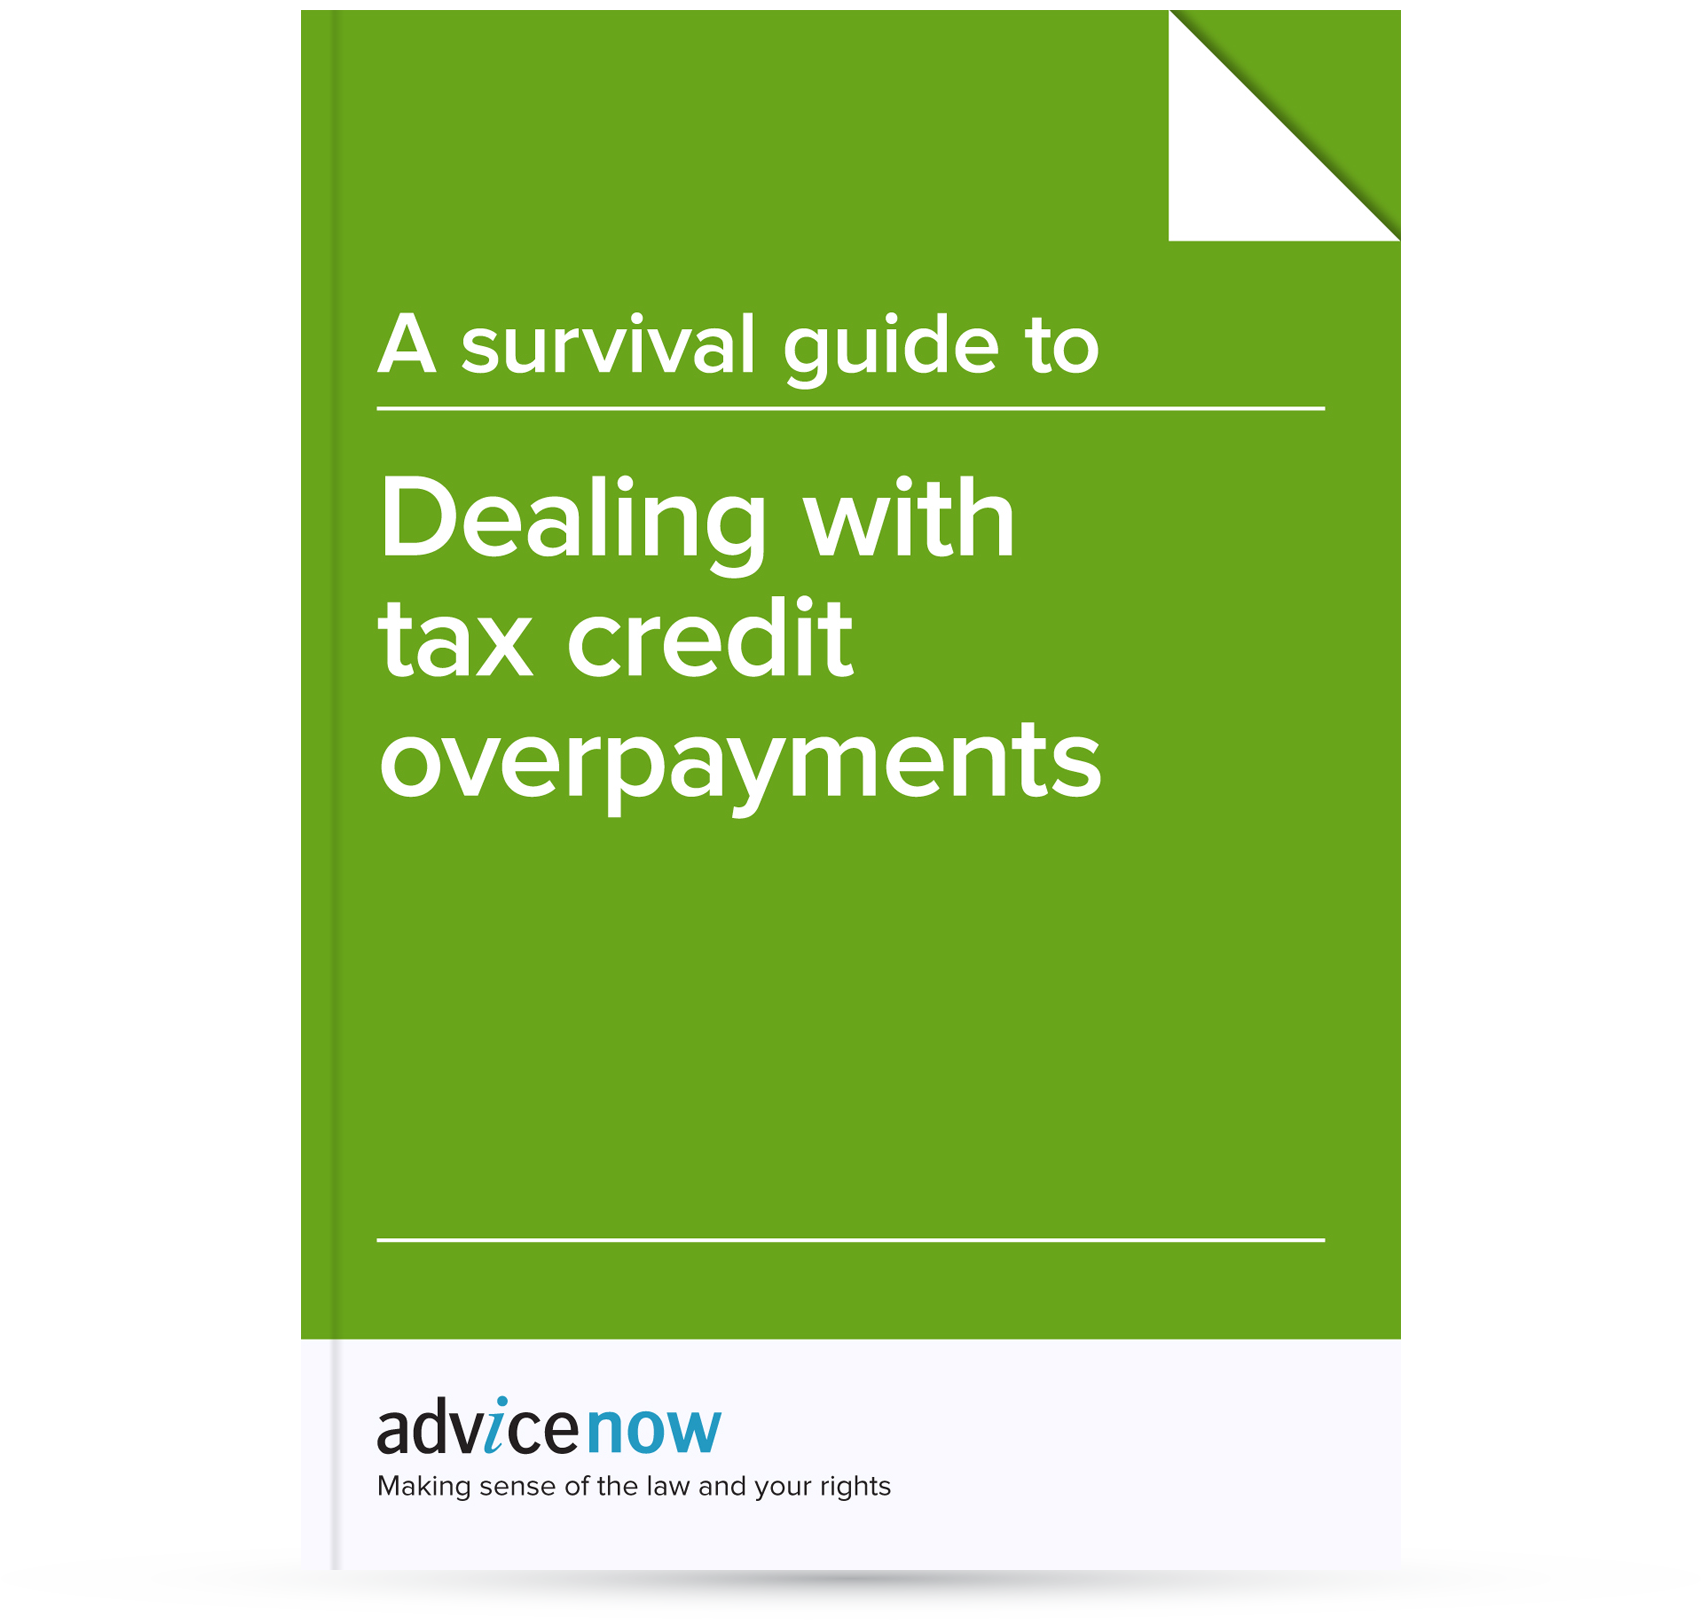 A survival guide to dealing with tax credit overpayments